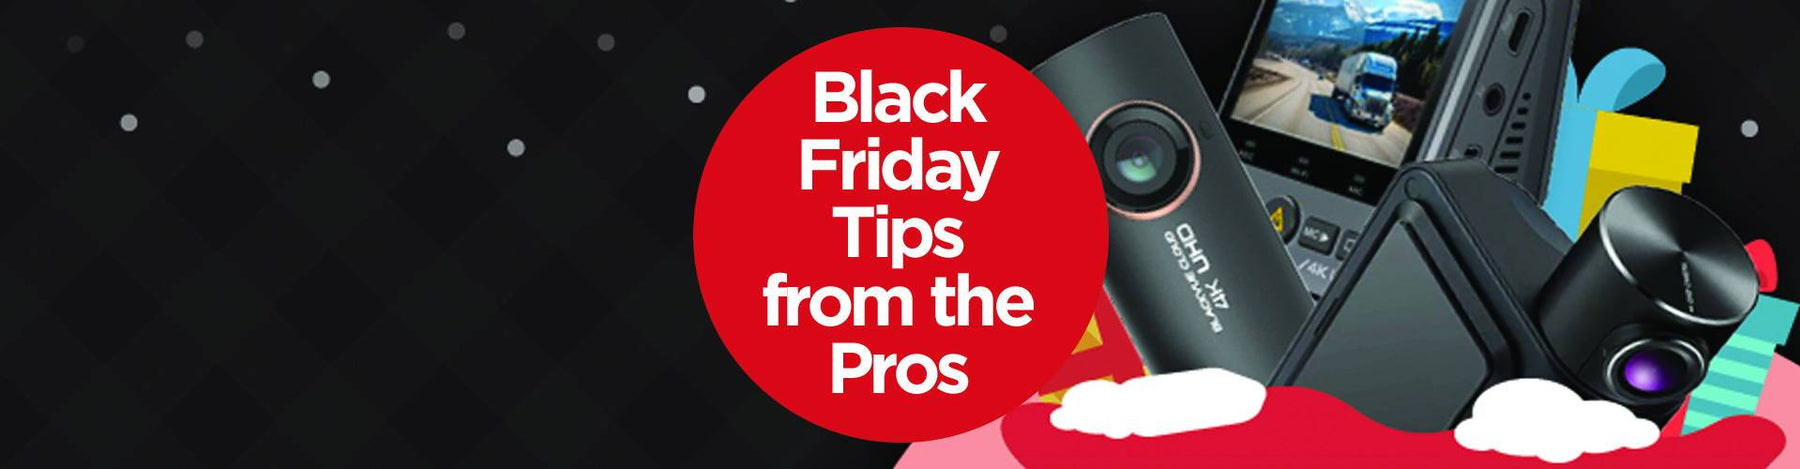 Black Friday Tips from the Pros